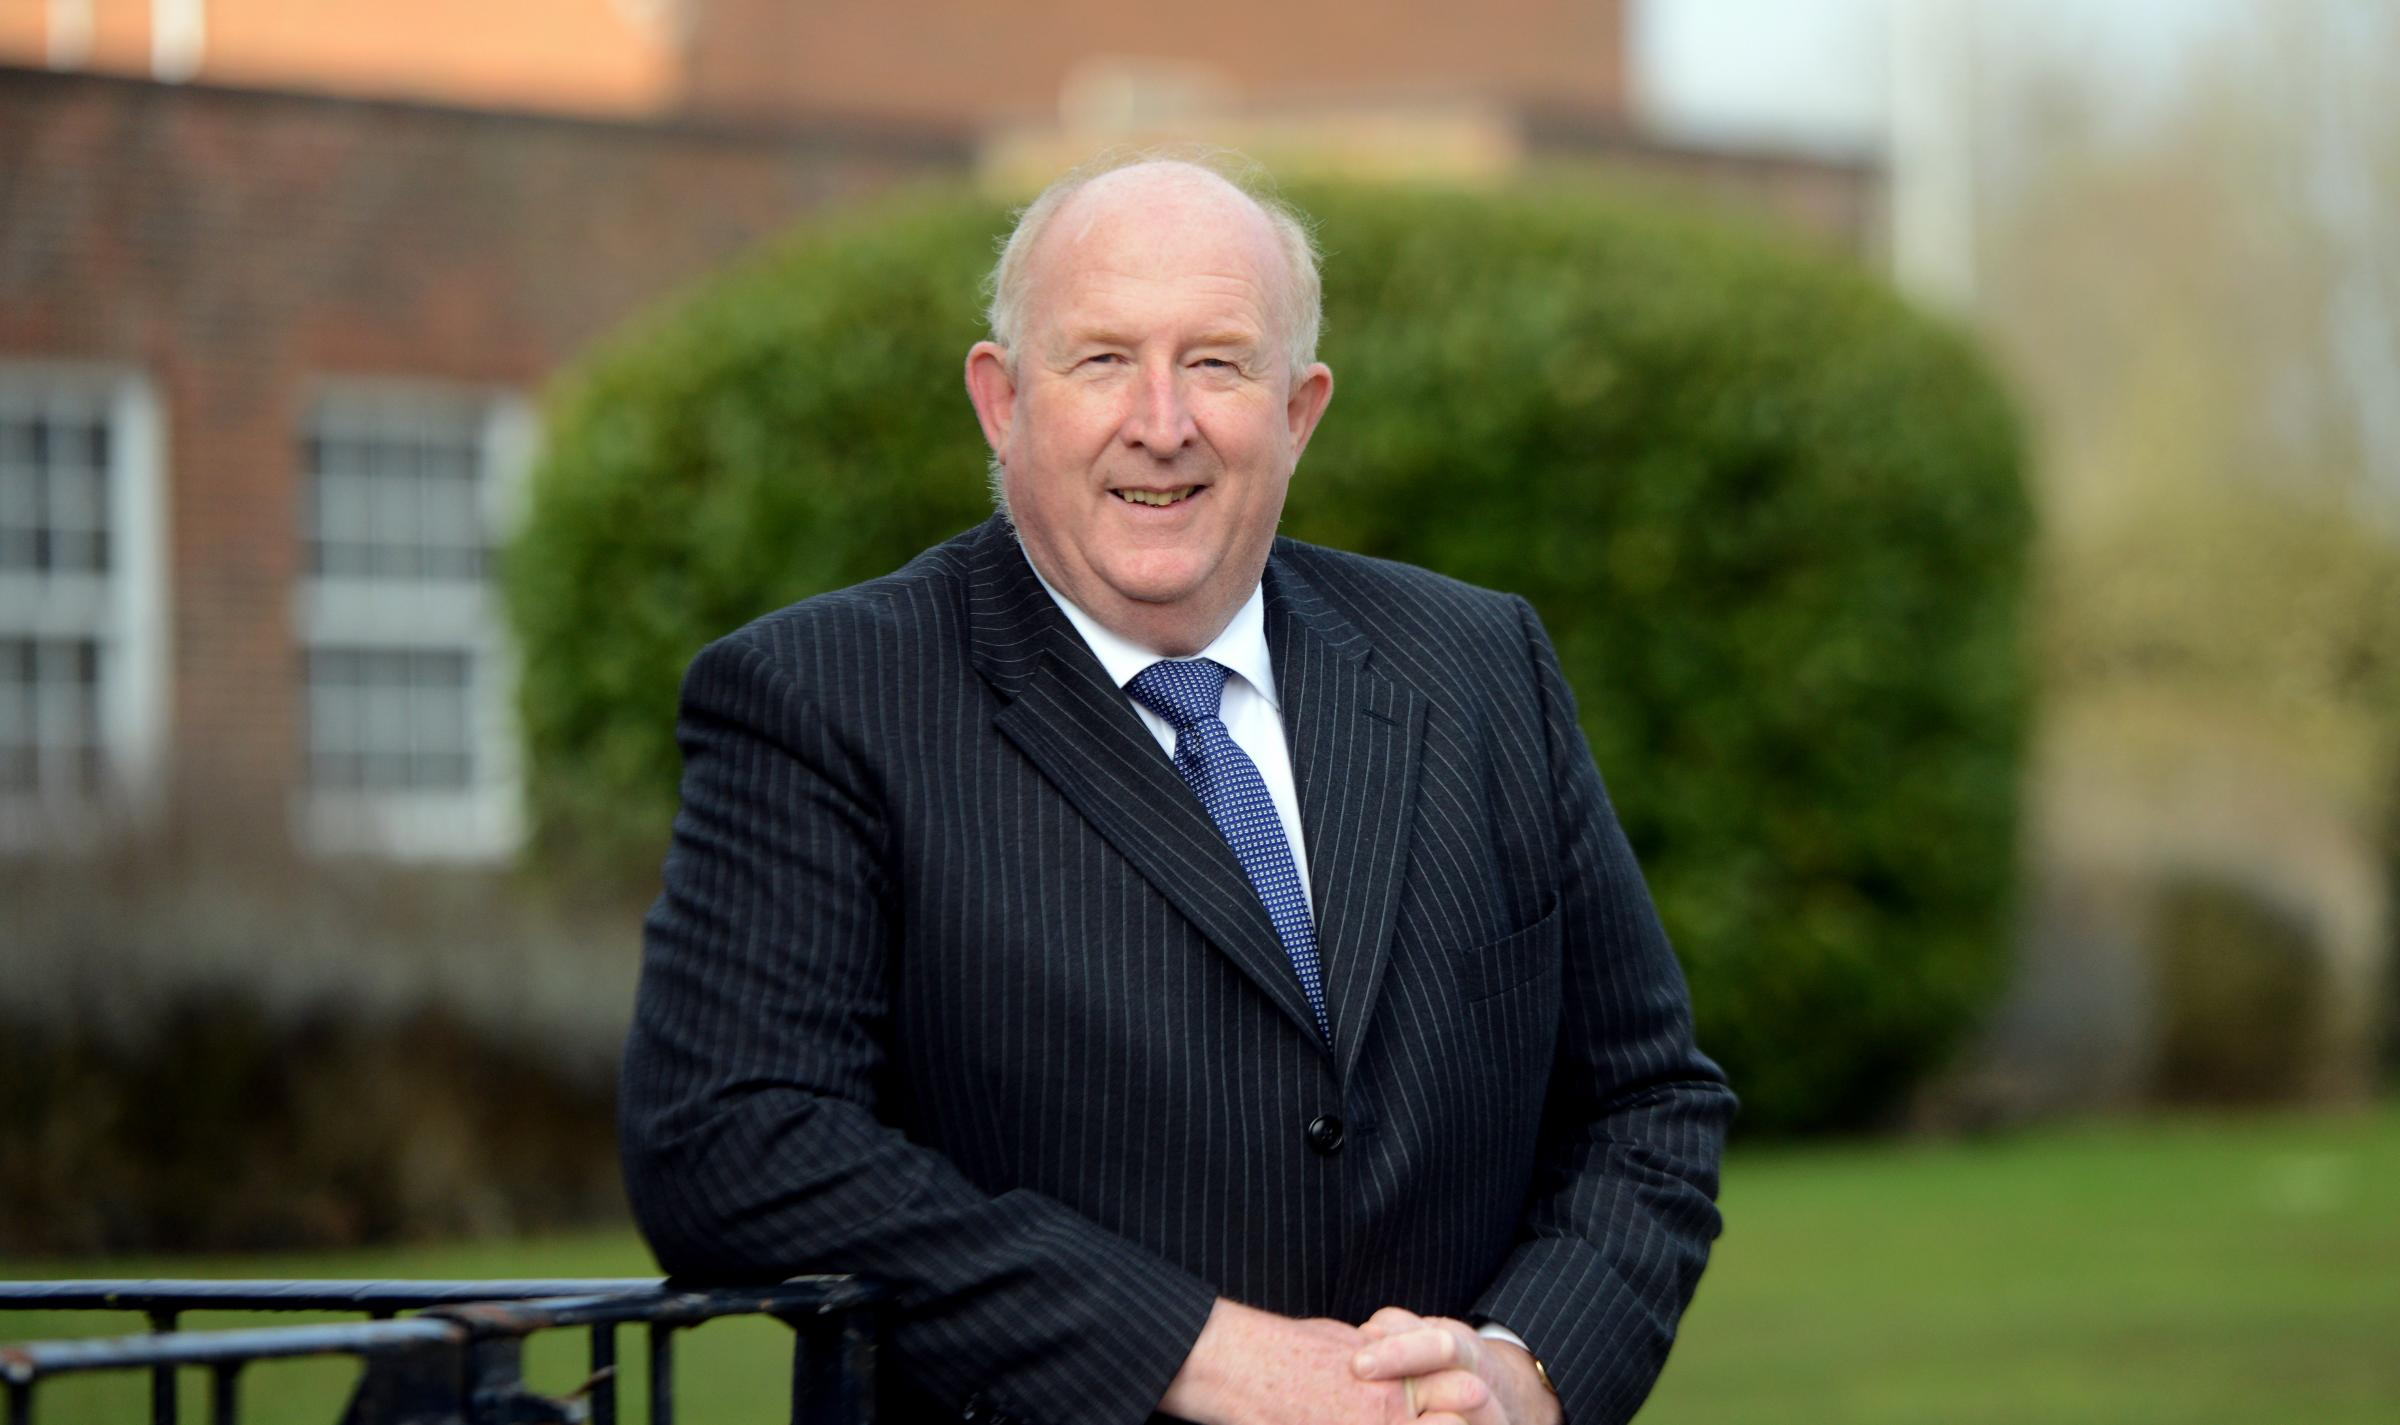 Wilts PCC Angus Macpherson backs charity that works to reintegrate sex offenders into society